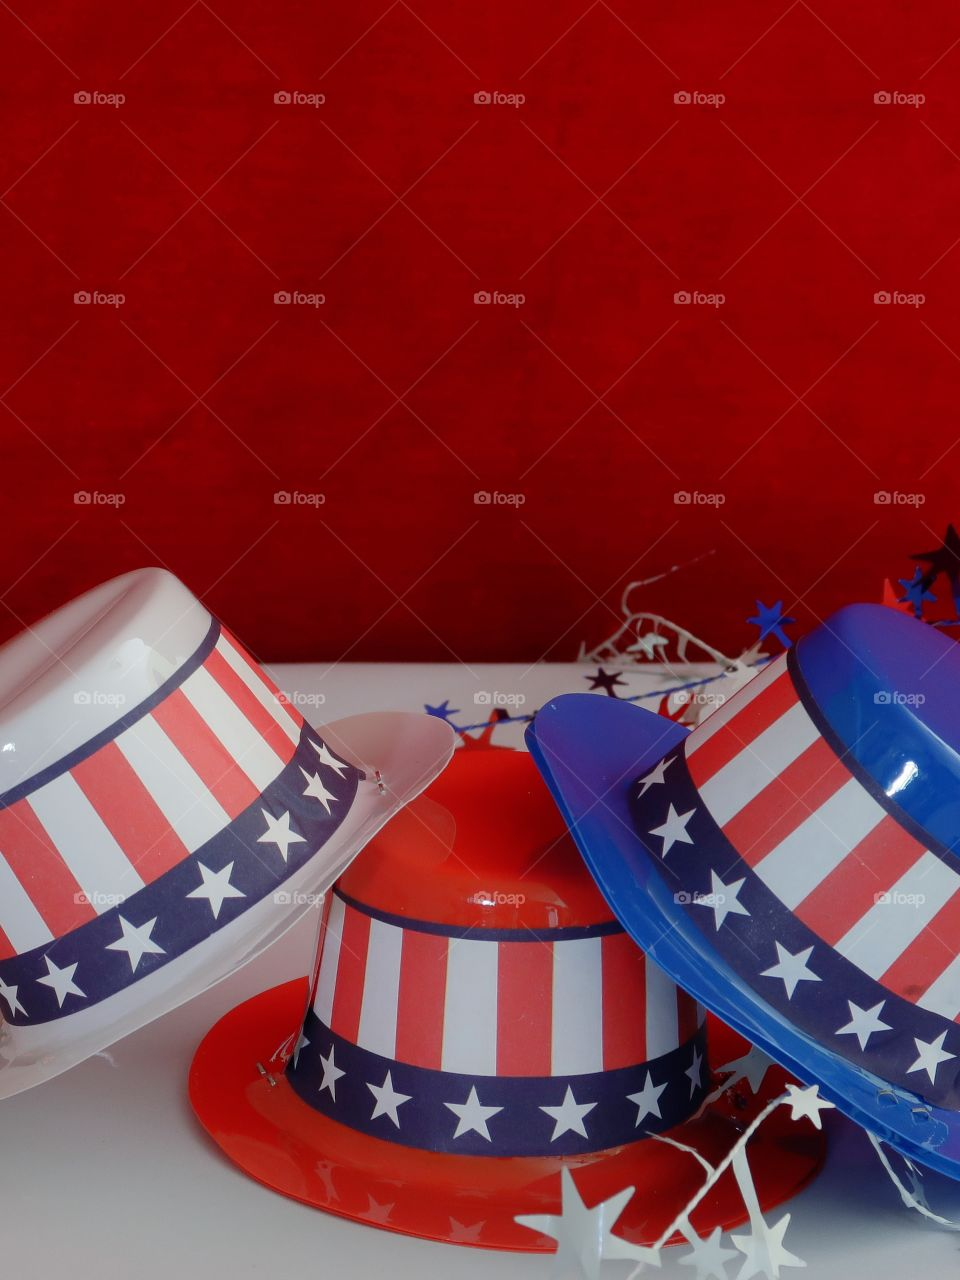 Tiny party hats in red, white, and blue with the Stars and Stripes for hat bands on a table with confetti.